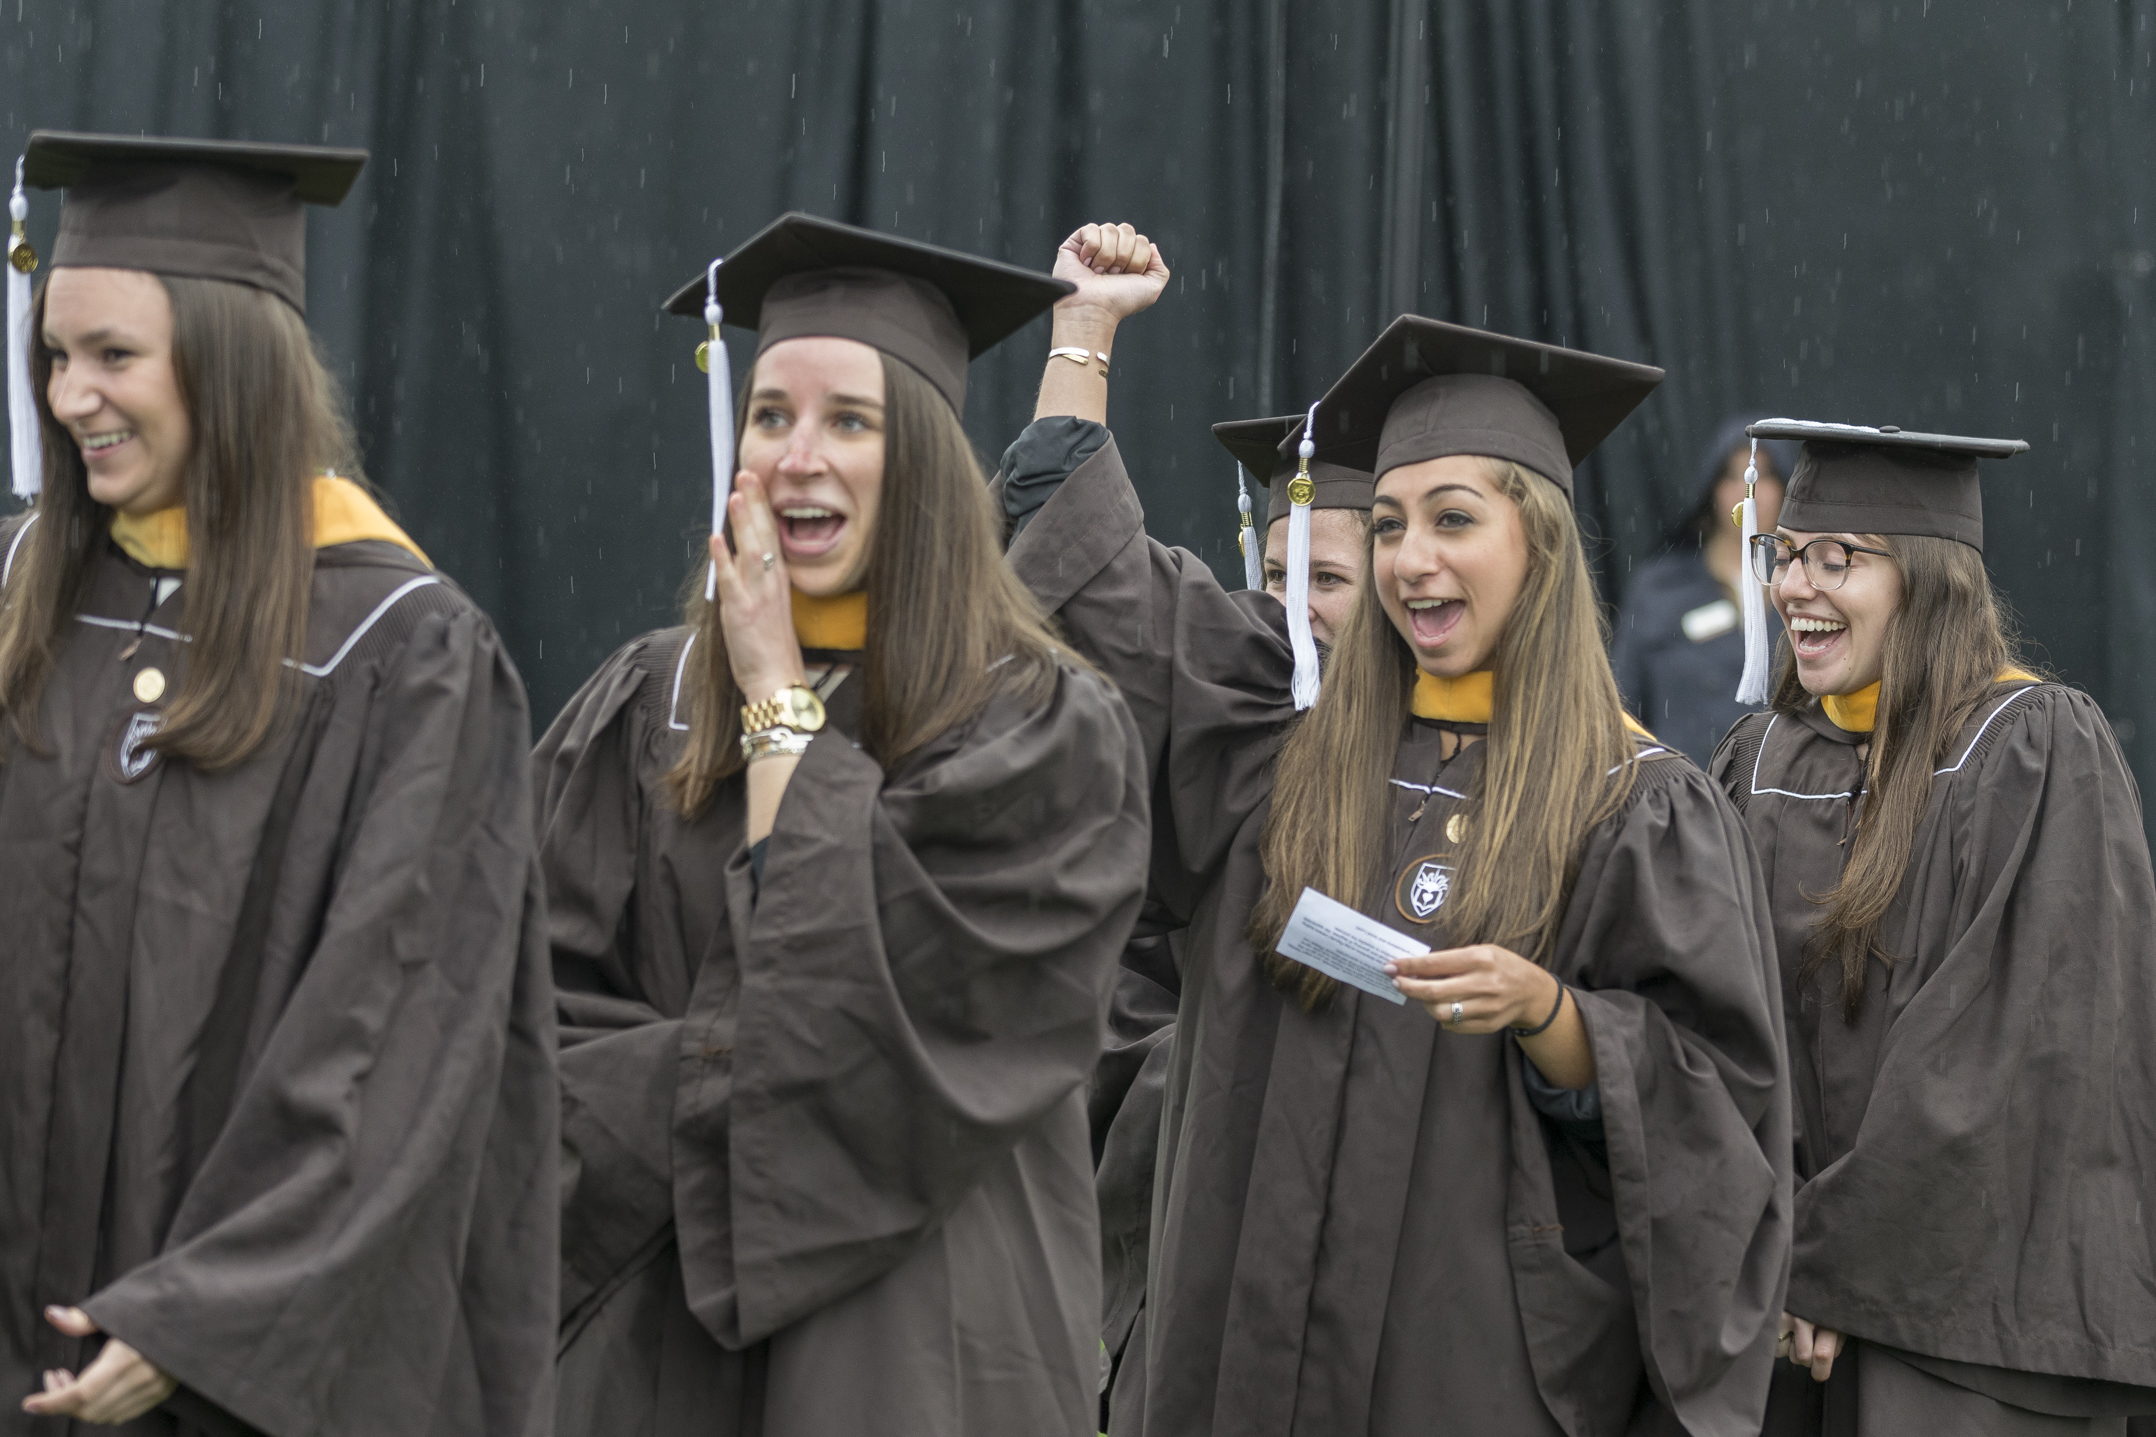 Graduates cheer for their friends Monday, May 22, 2017, in Goodman Stadium. There were 1,480 graduates in the class of 2017, hailing from 41 states and 28 countries. (Roshan Giyanani/B&W Staff)